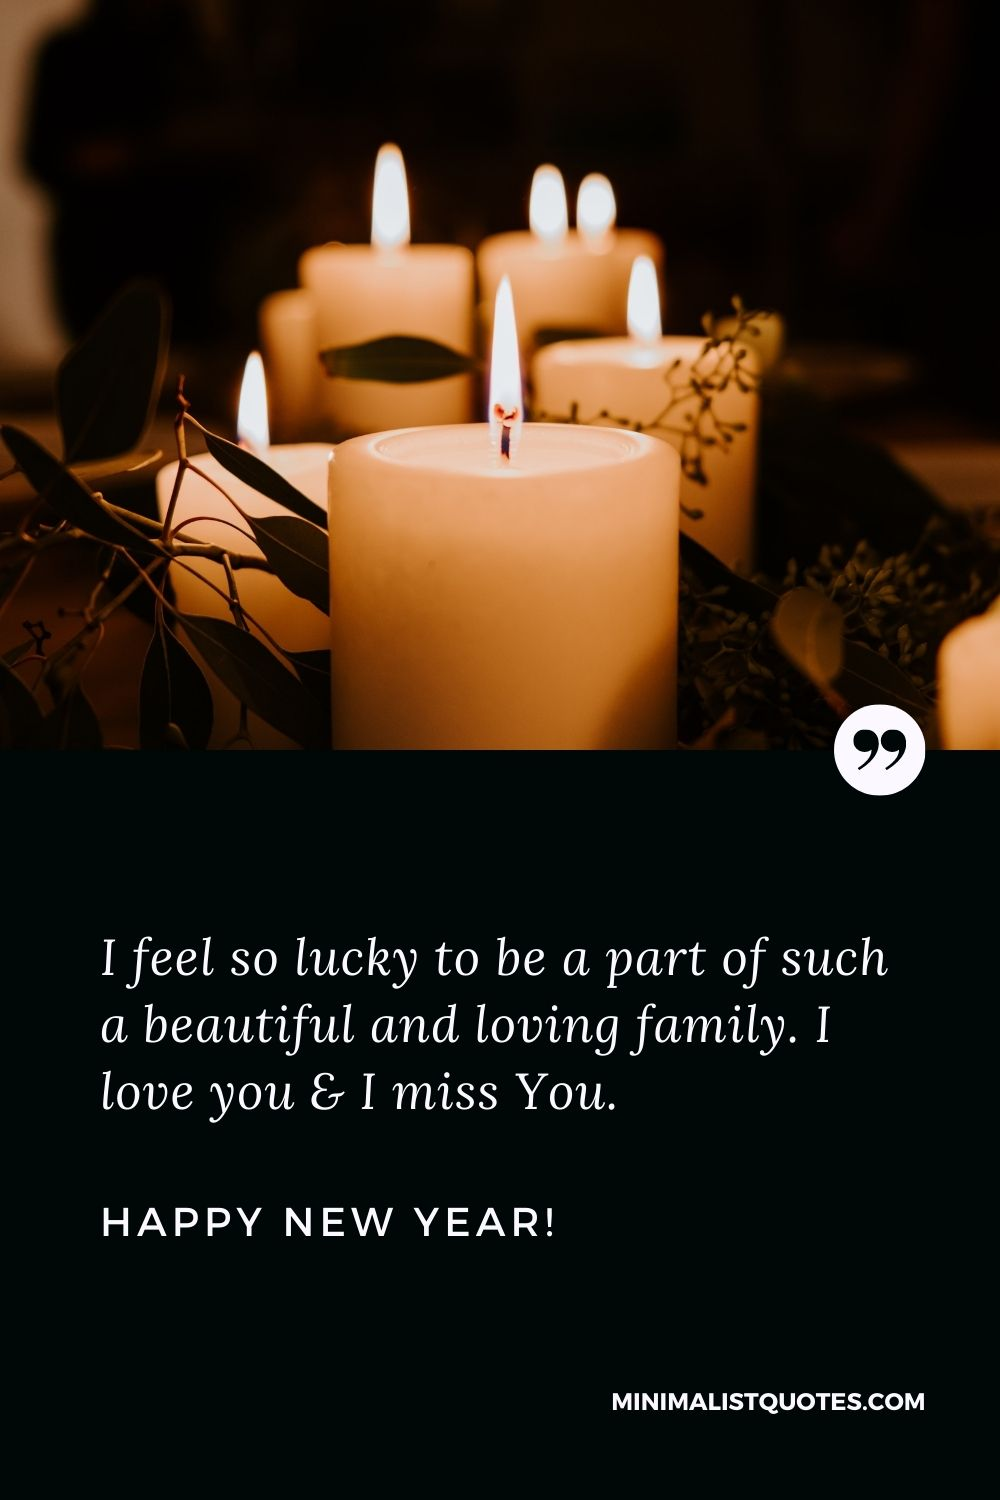 New Year Wishes For Family: I feel so lucky to be a part of such a beautiful and loving family. I love you & I miss You. Happy New Year!